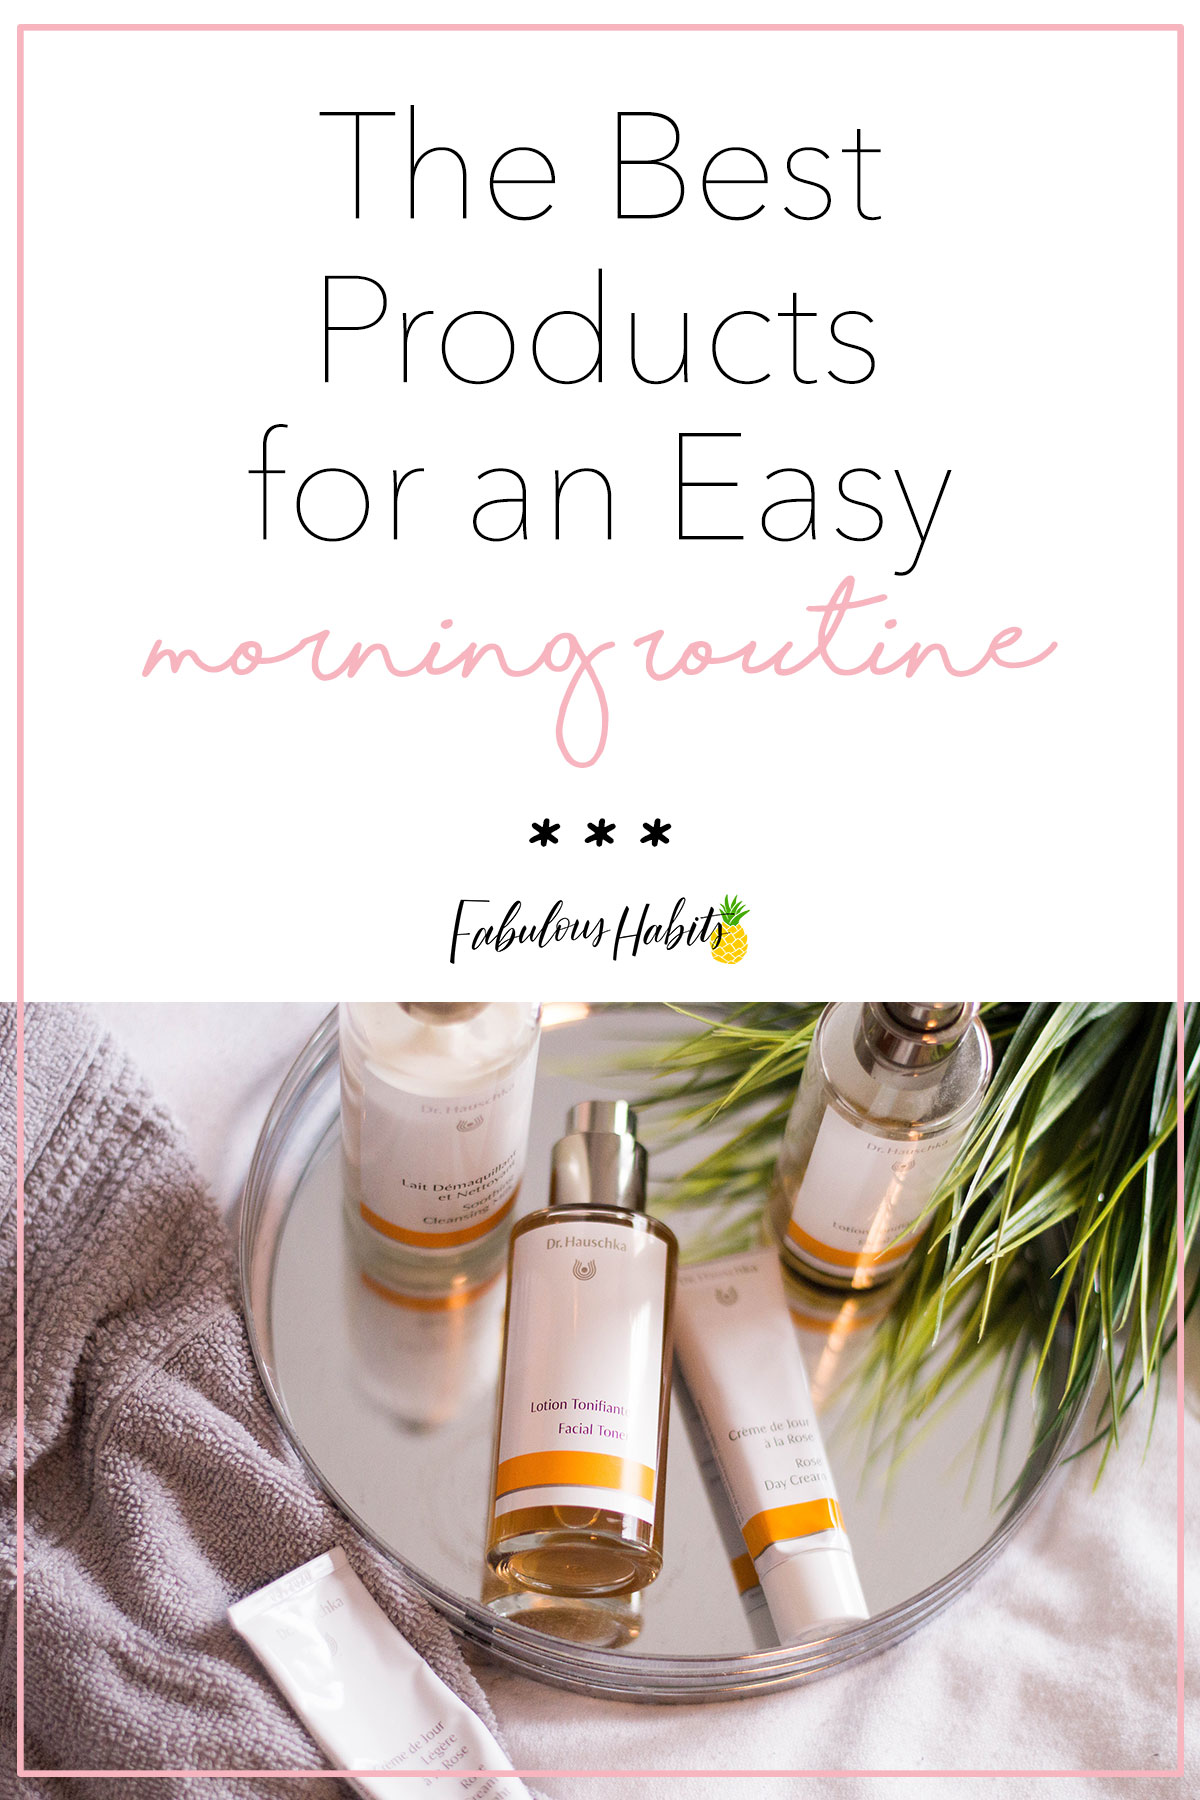 These are the products I turn to for a super effective daily morning routine #drhauschka #organicselfcare